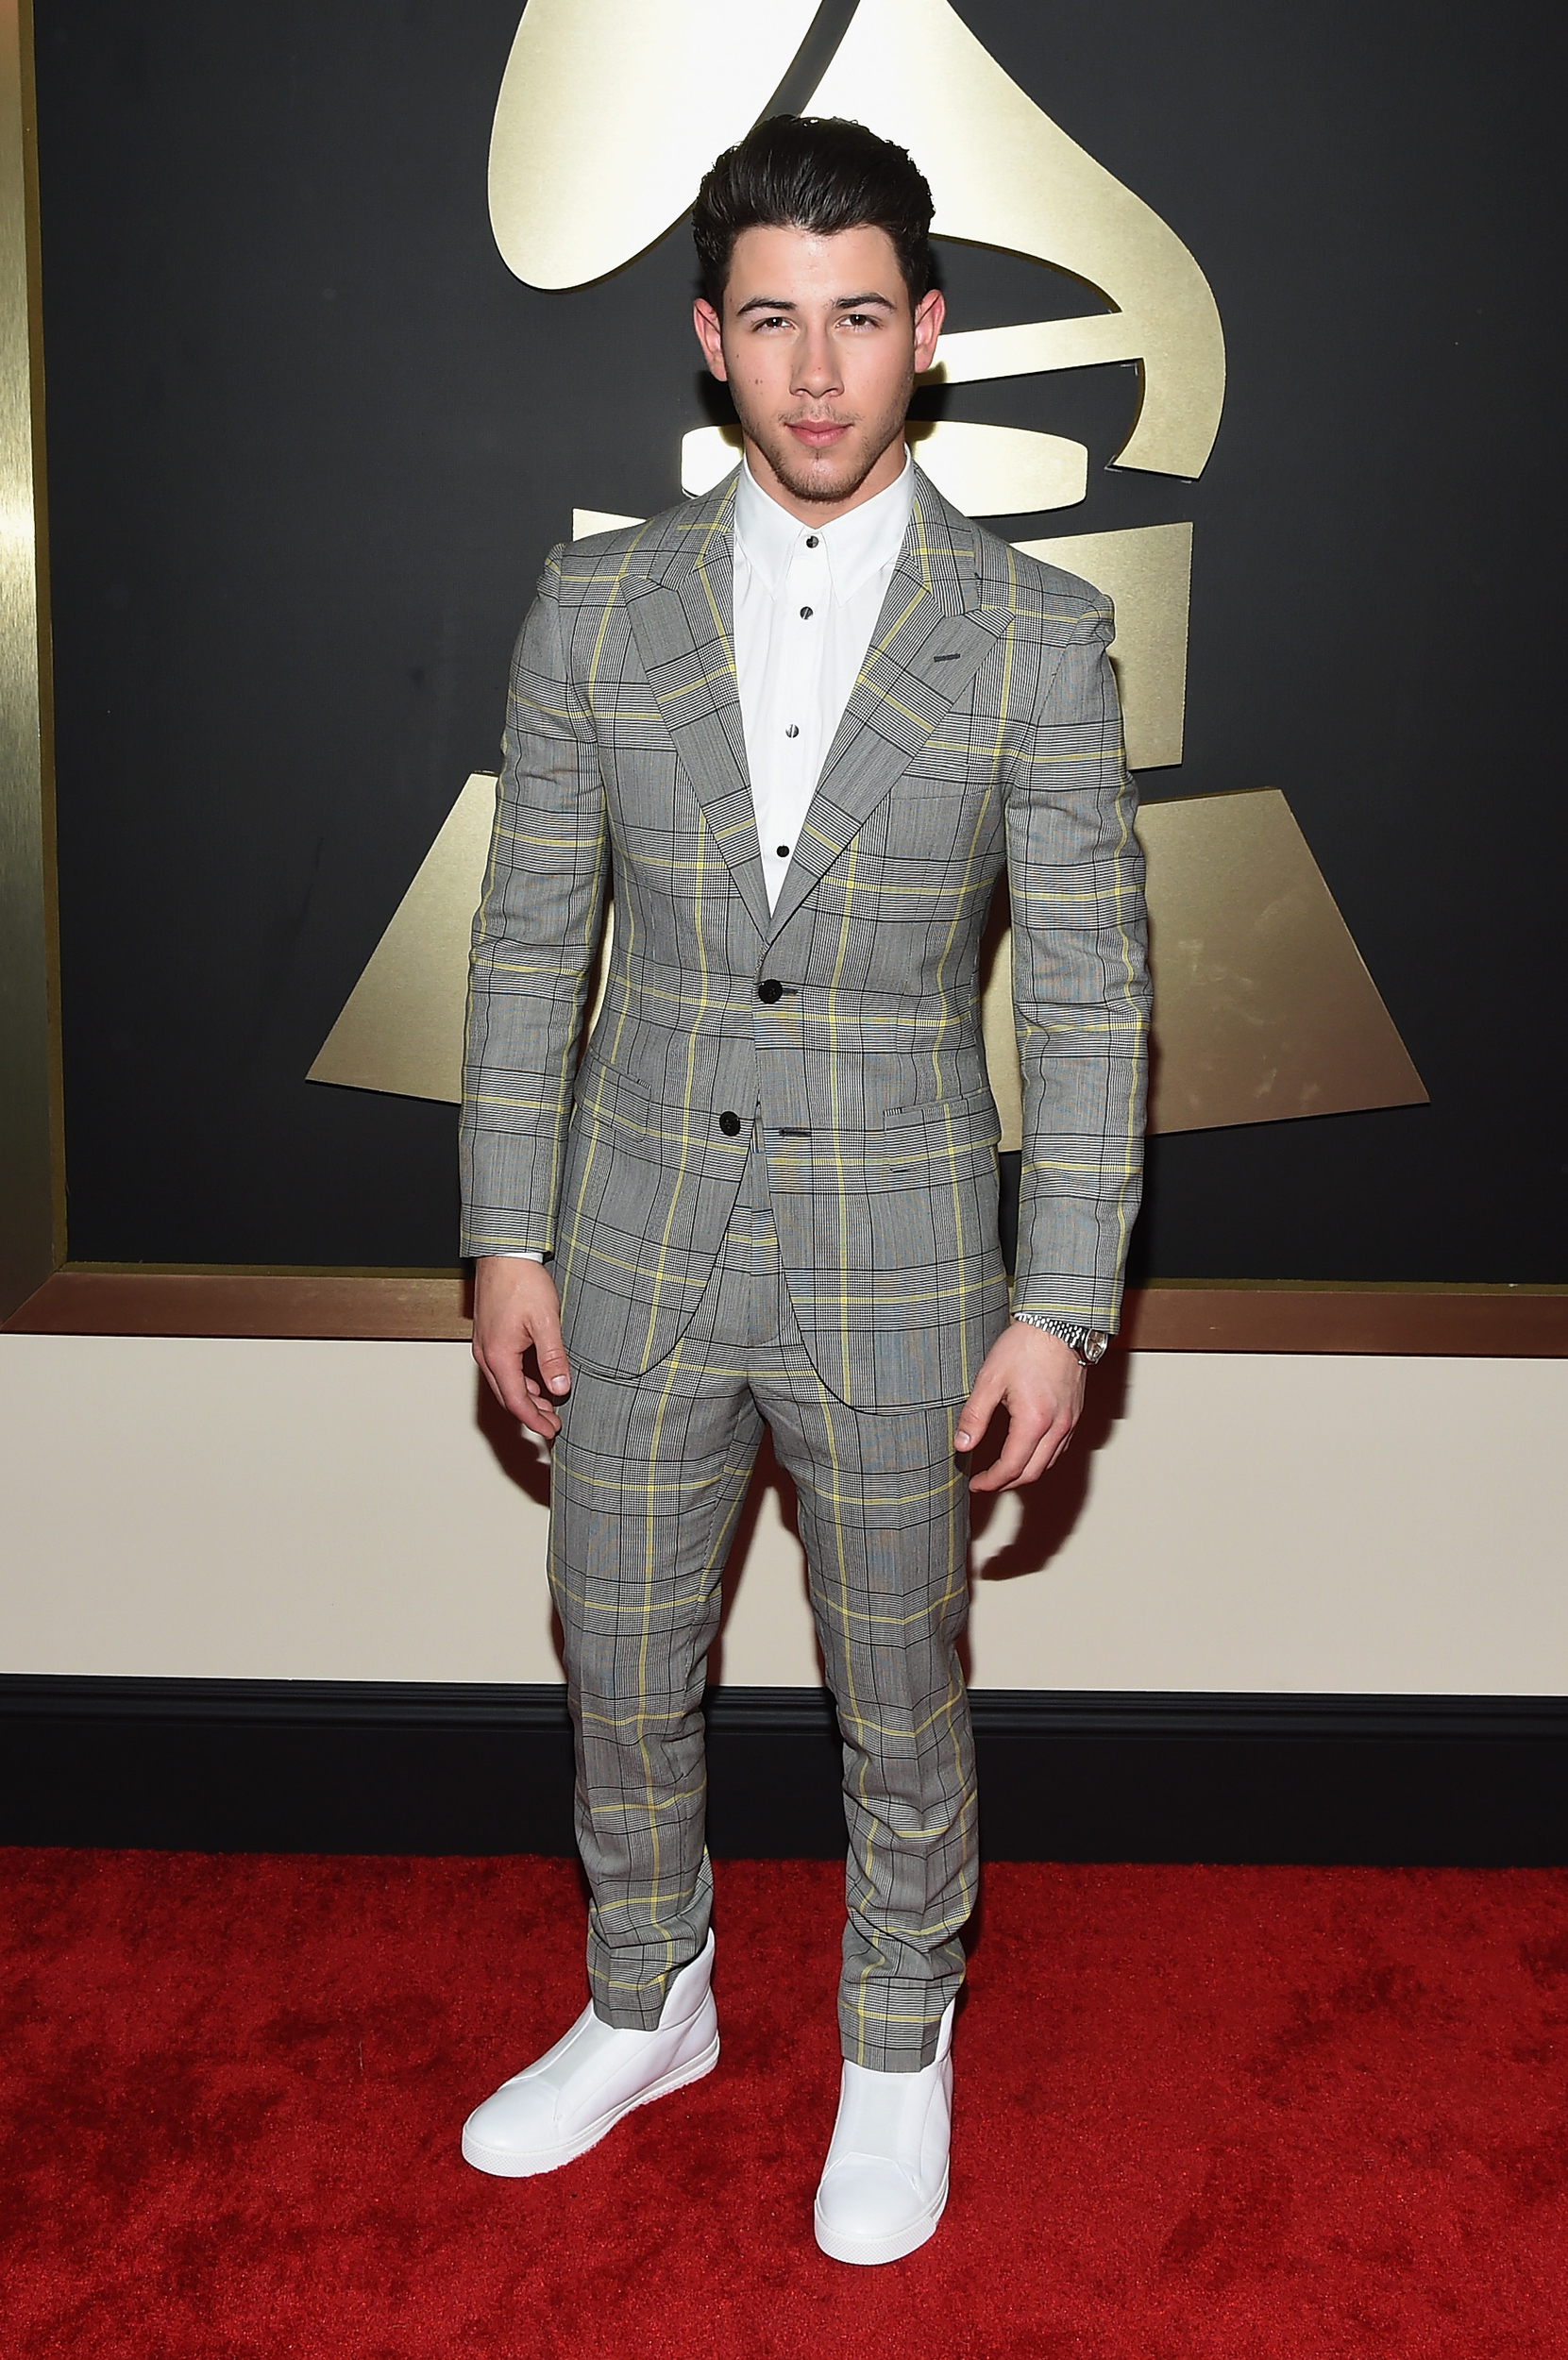 Nick-Jonas-In-Versace-at-the-57th-annual-grammy-awards-red-carpet